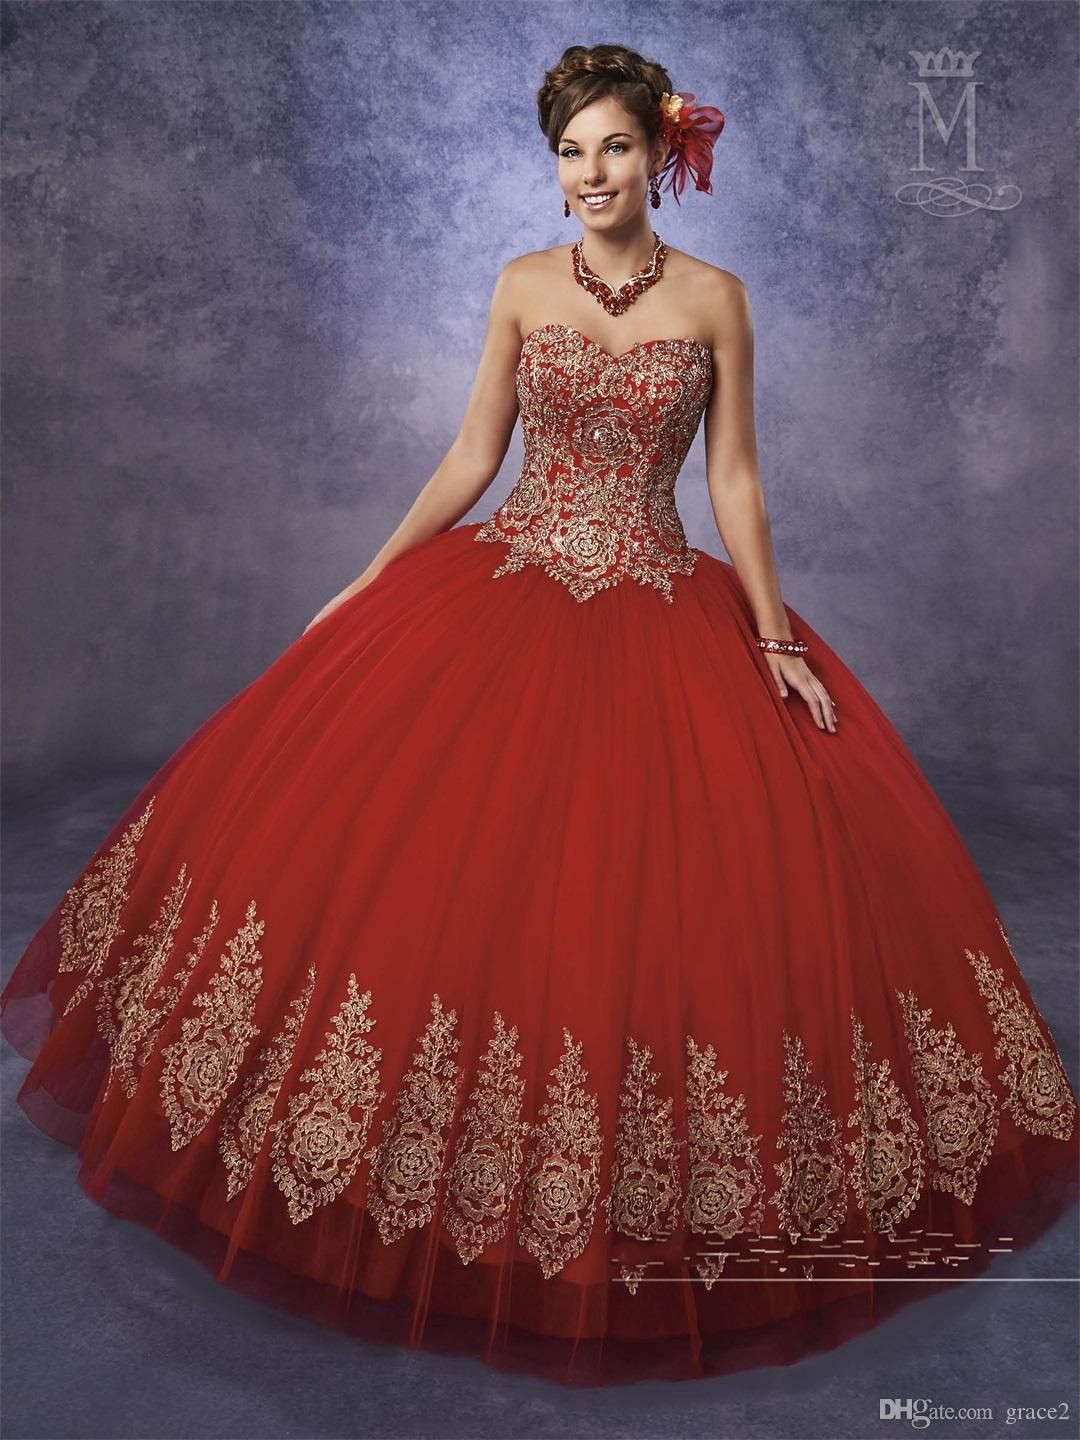 Bright Red Quinceanera Dresses With Gold Appliques And Sweetheart ...